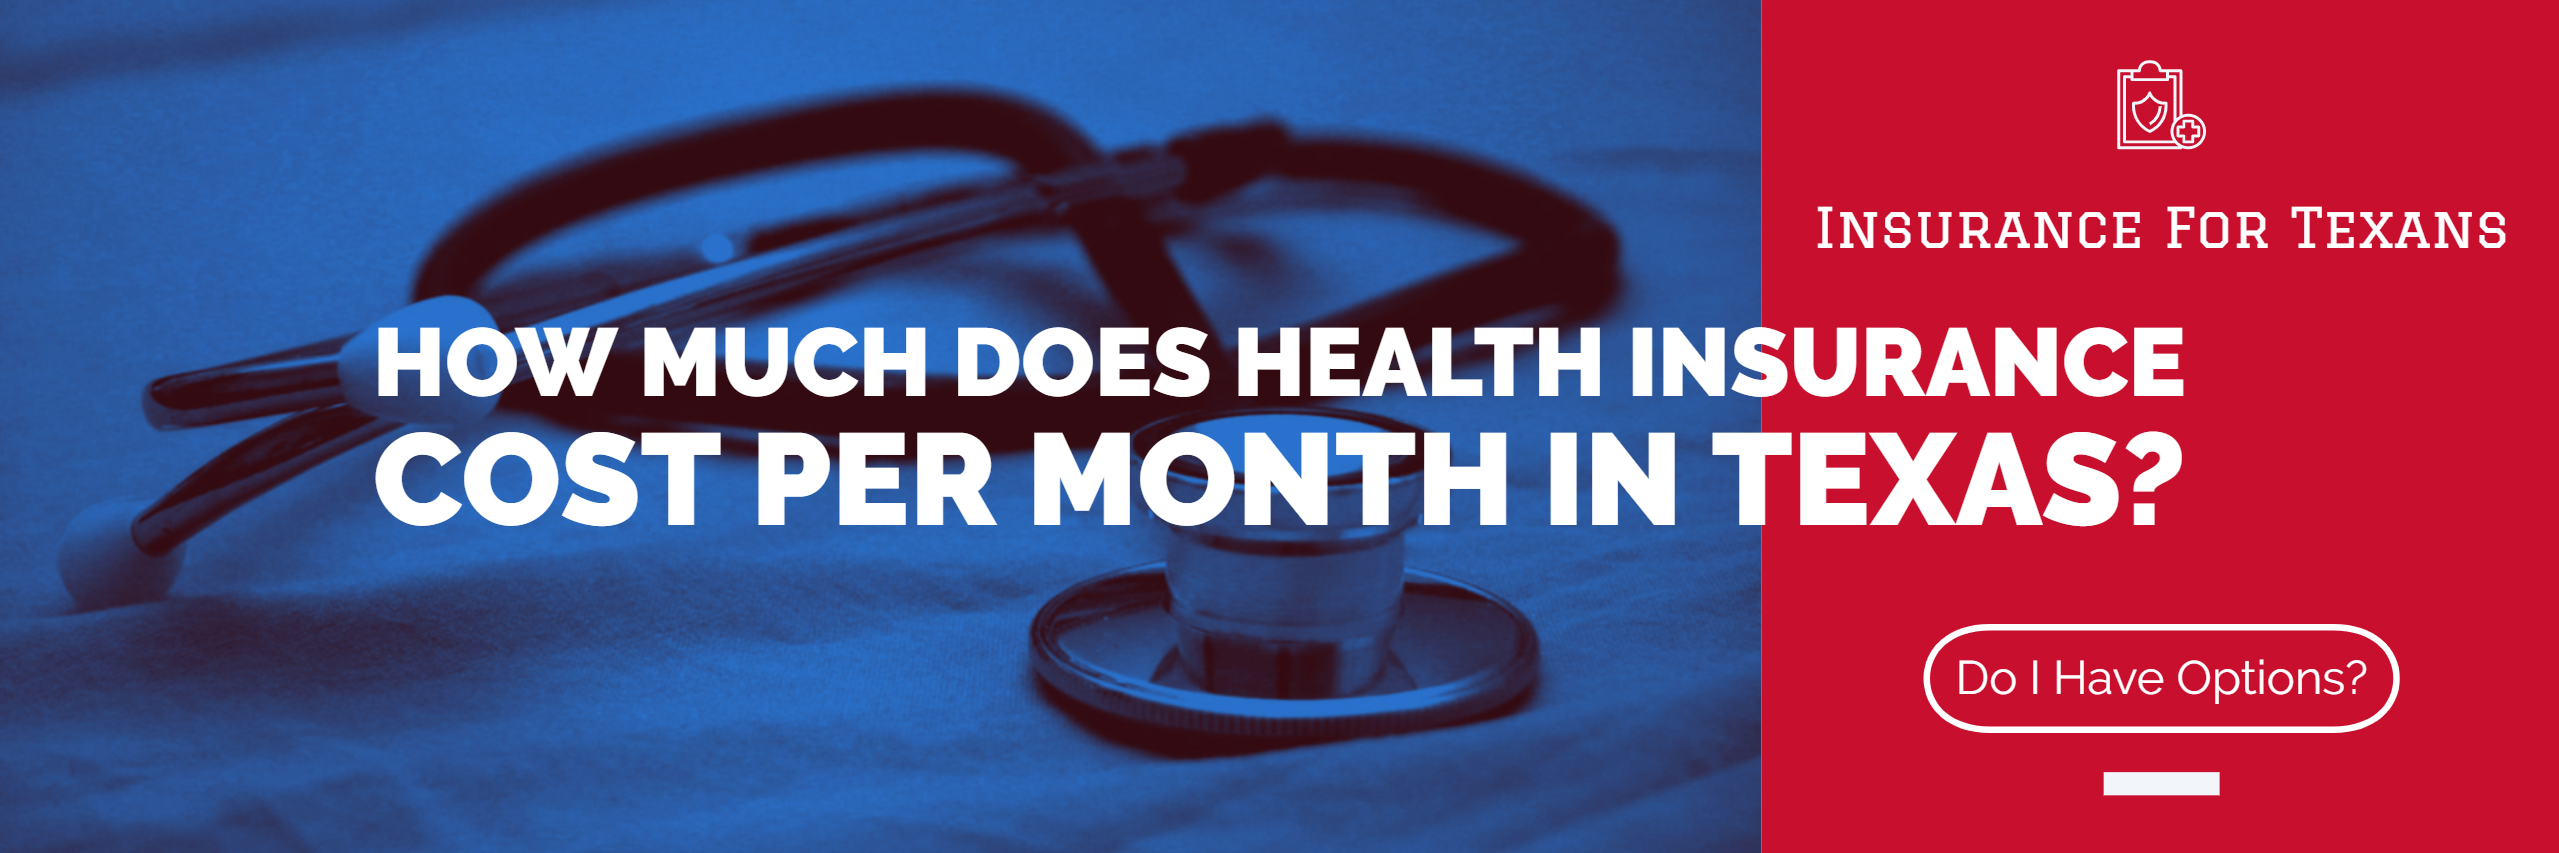 How Much Does Health Insurance Cost Per Month In Texas